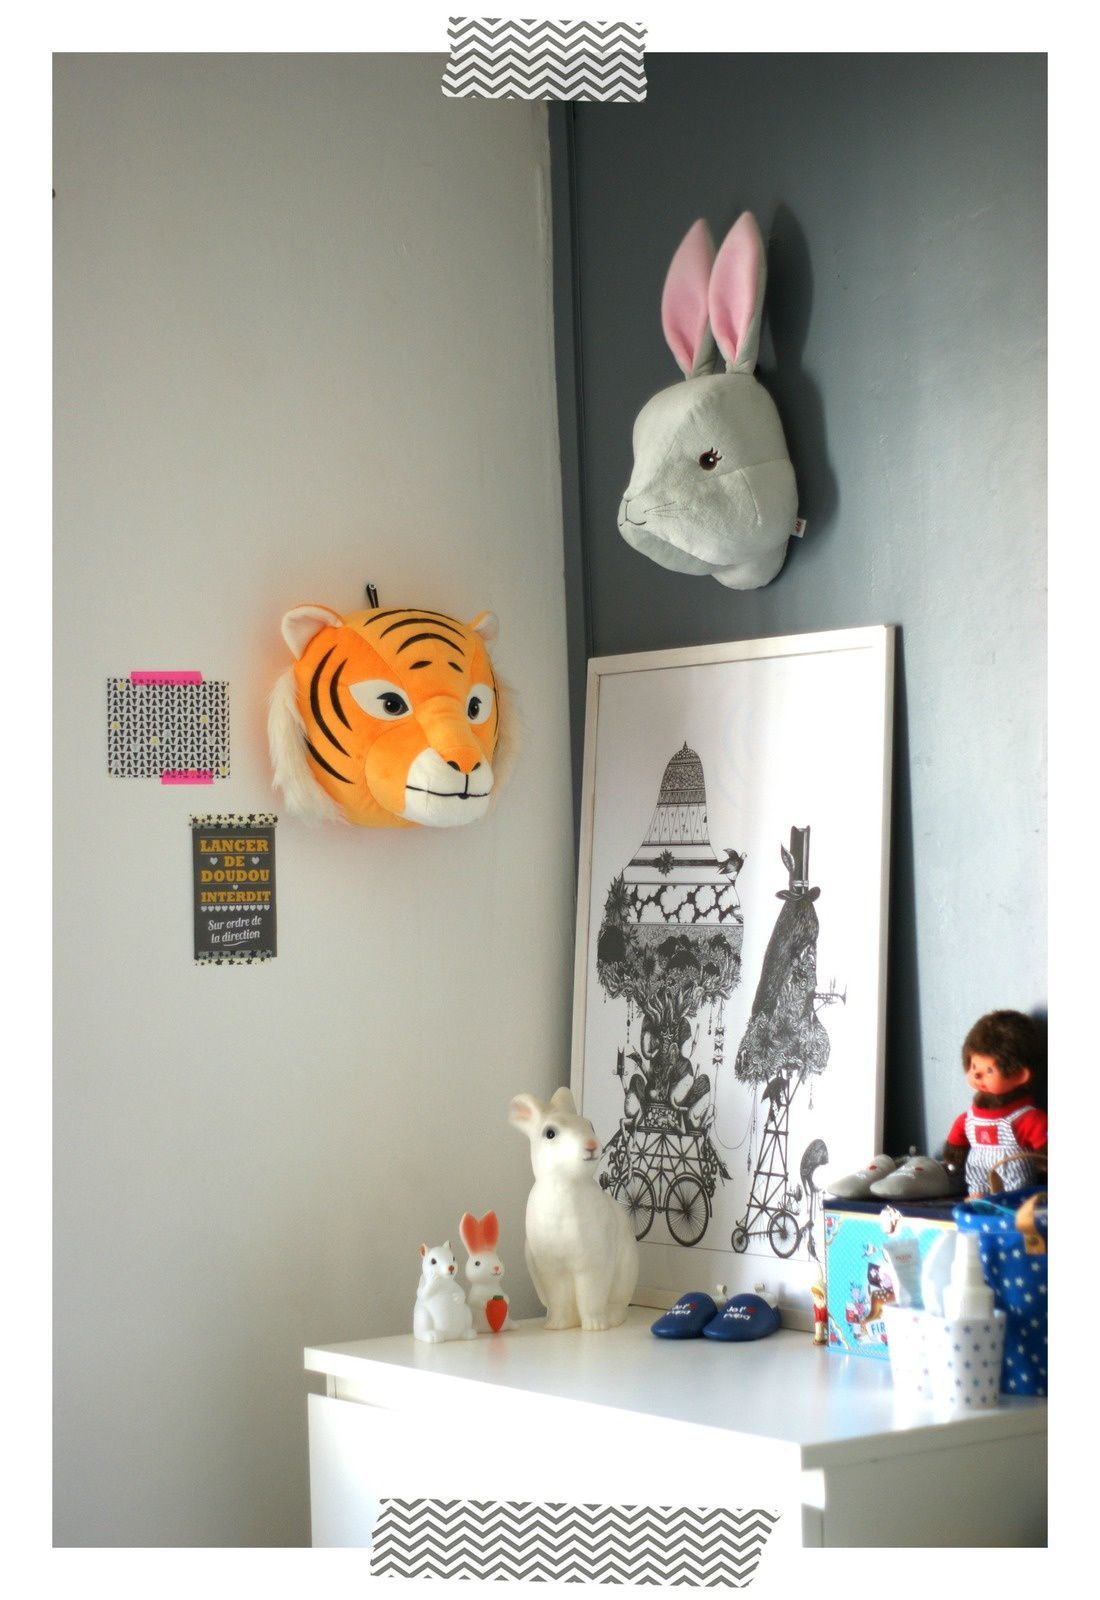 H m home enfants paris yummy yo - H m home paris adresse ...